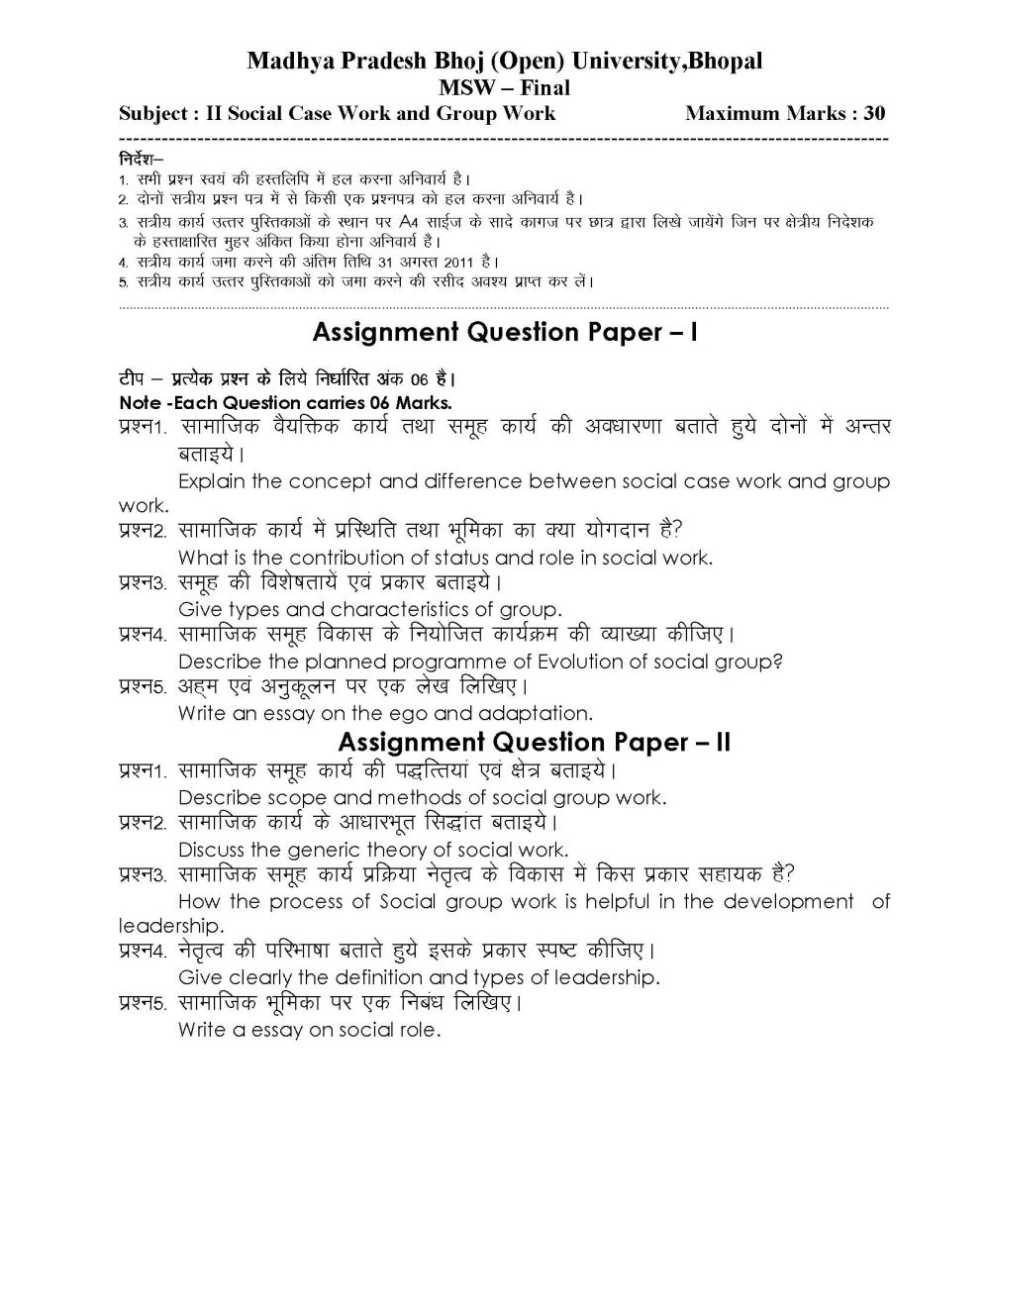 005 Bhoj University Bhopal Msw What Are The Qualities Of Good Leader Essay Formidable A Characteristics Pdf Introduction Make Full